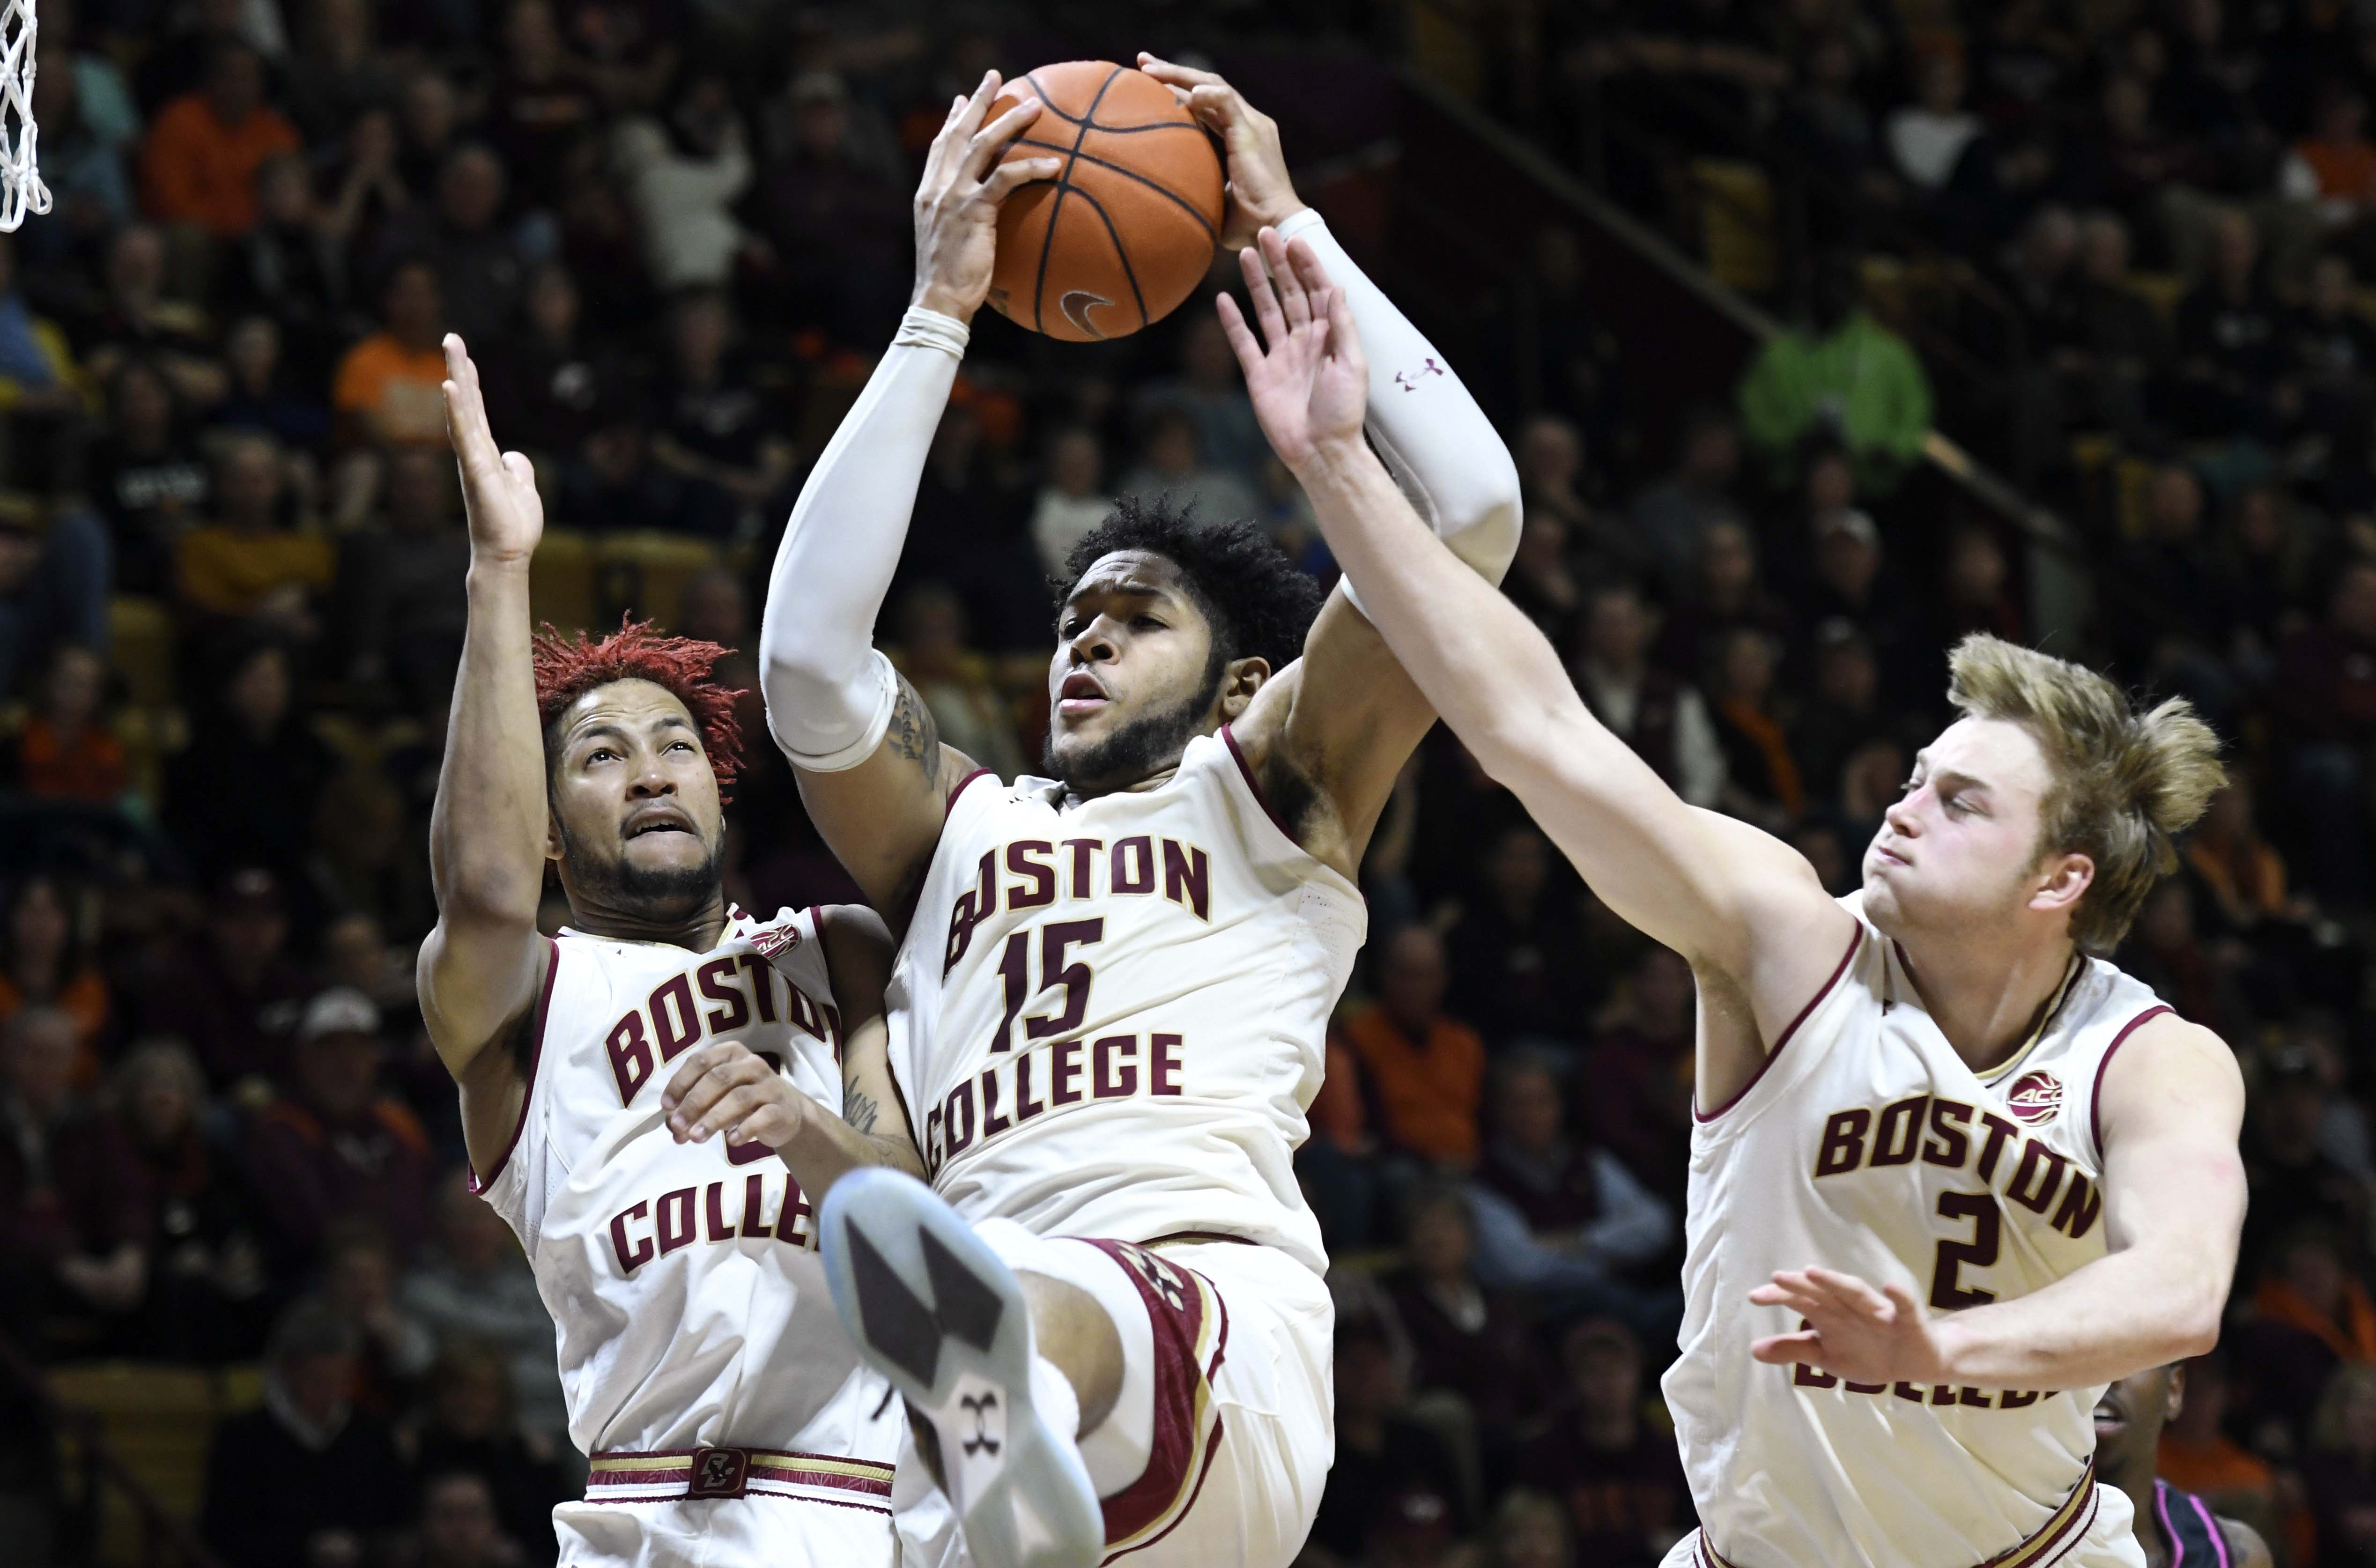 Jan 29, 2017; Blacksburg, VA, USA; Boston College Eagles forward Mo Jeffers (15) beats teammates guard Ky Bowman (0) and forward Connar Tava (2) to the rebound in the second half against the Virginia Tech Hokies at Cassell Coliseum. Mandatory Credit: Michael Shroyer-USA TODAY Sports